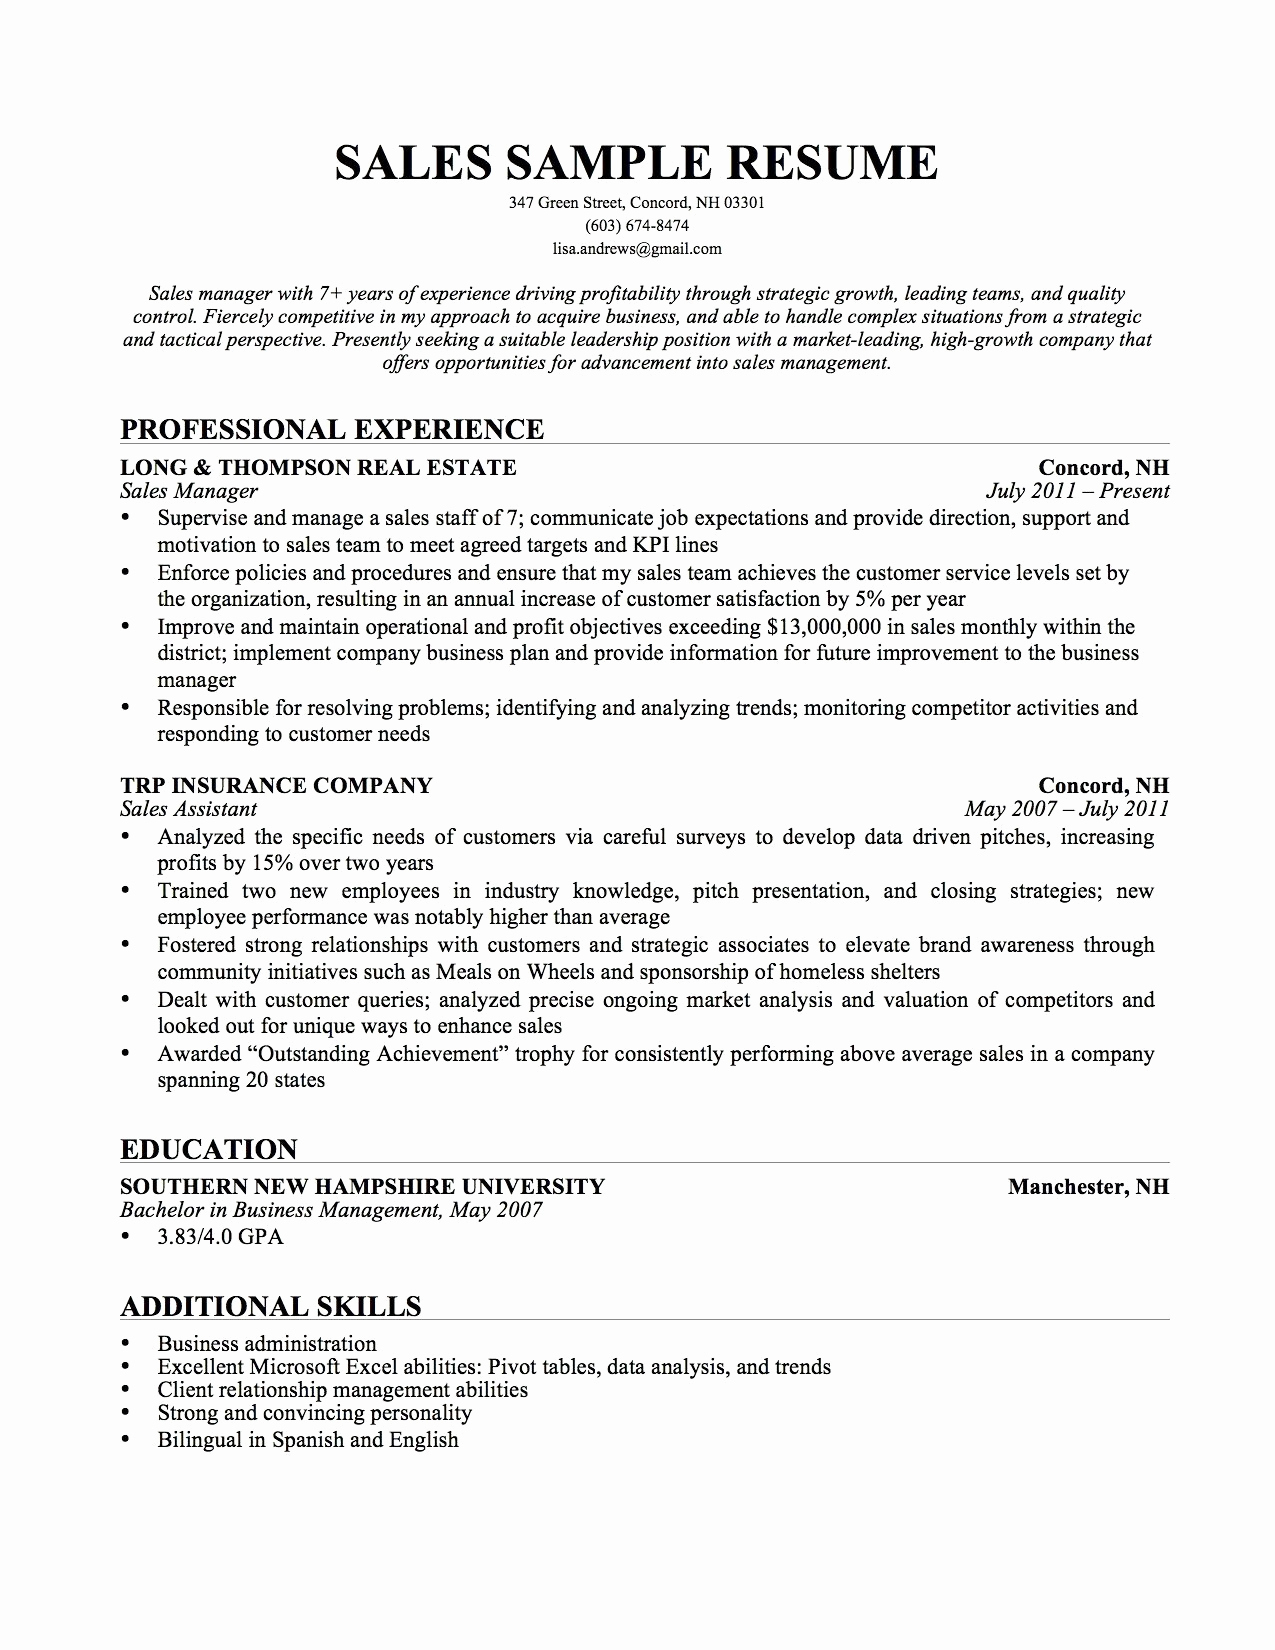 Resumes for College Students - College Graduate Resume Examples Best Type A Resume Beautiful